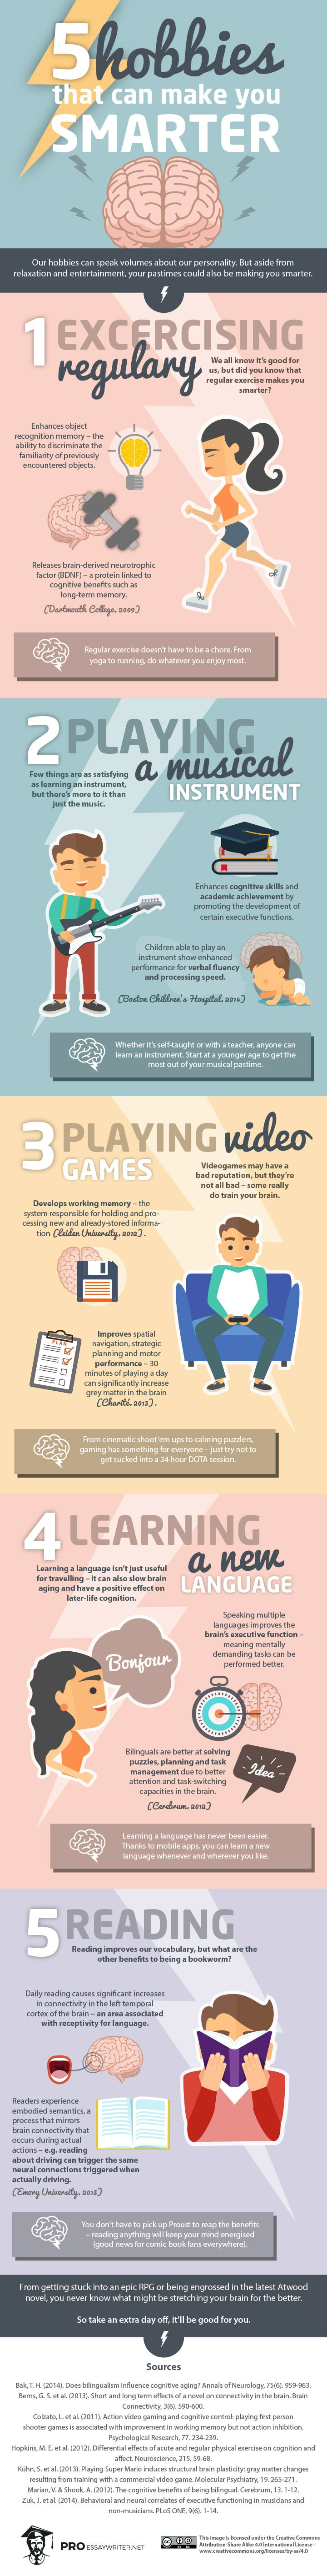 5 Hobbies That Can Make You Smarter (Infographic)